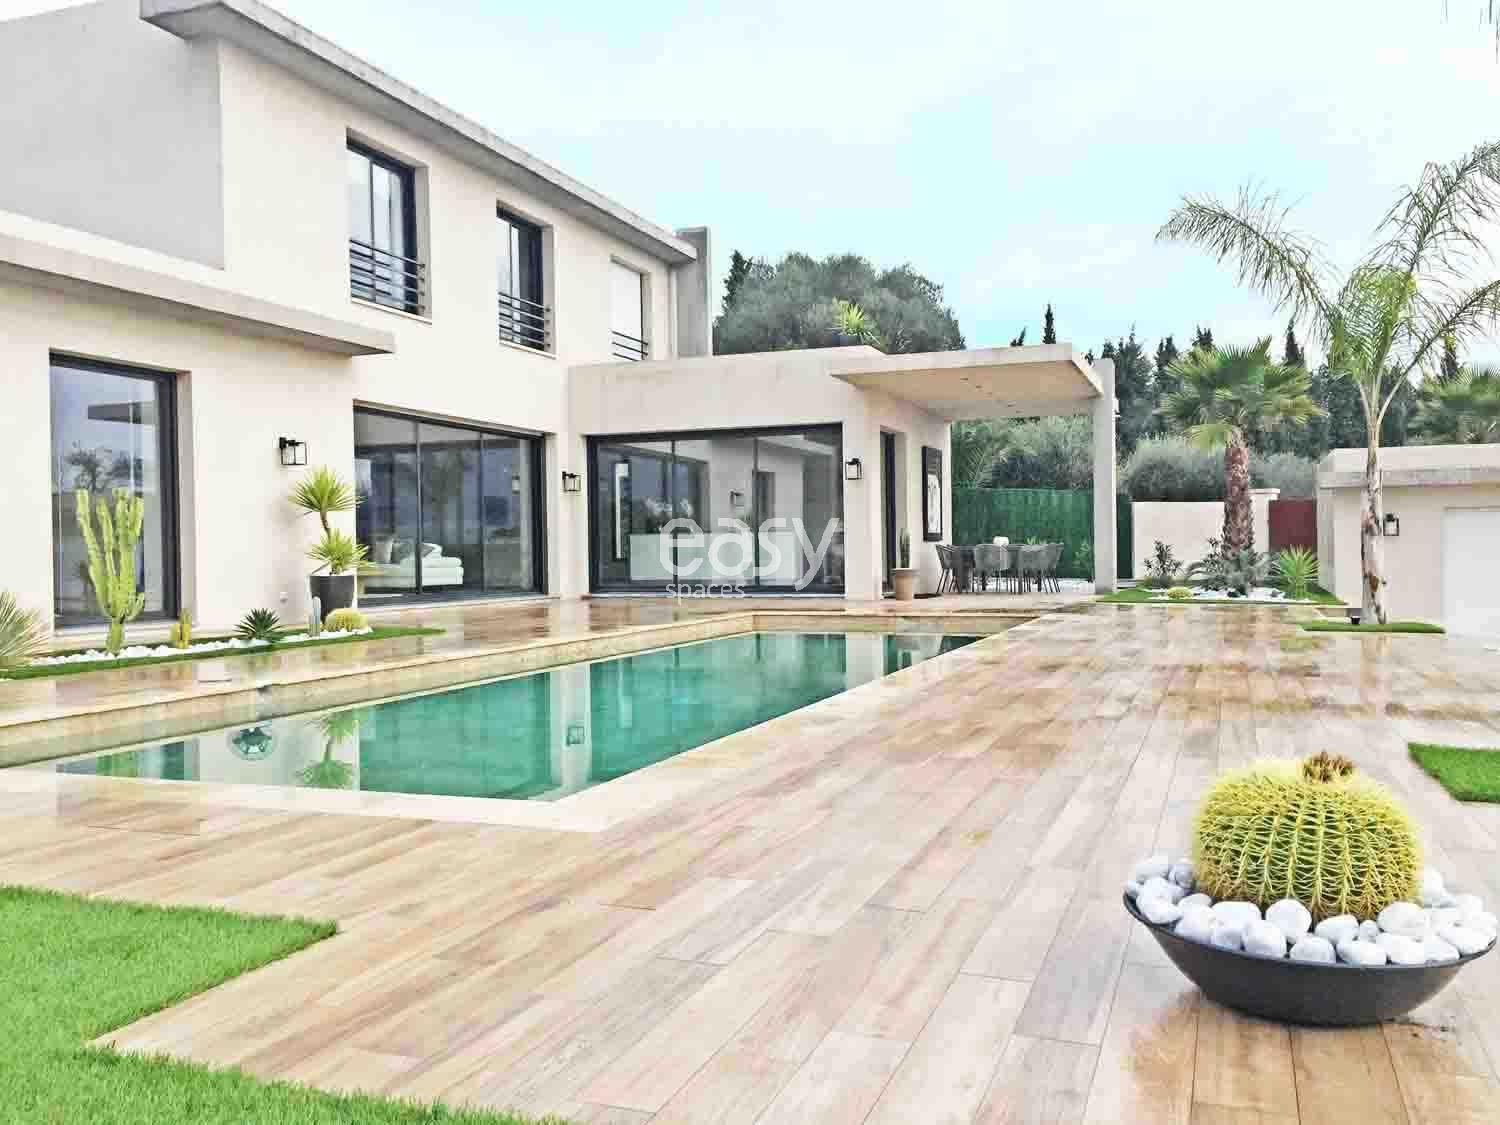 Location De Maison Contemporaine Pour Photos Tournages Et V Nements Pro Pr S De Cannes Lieux